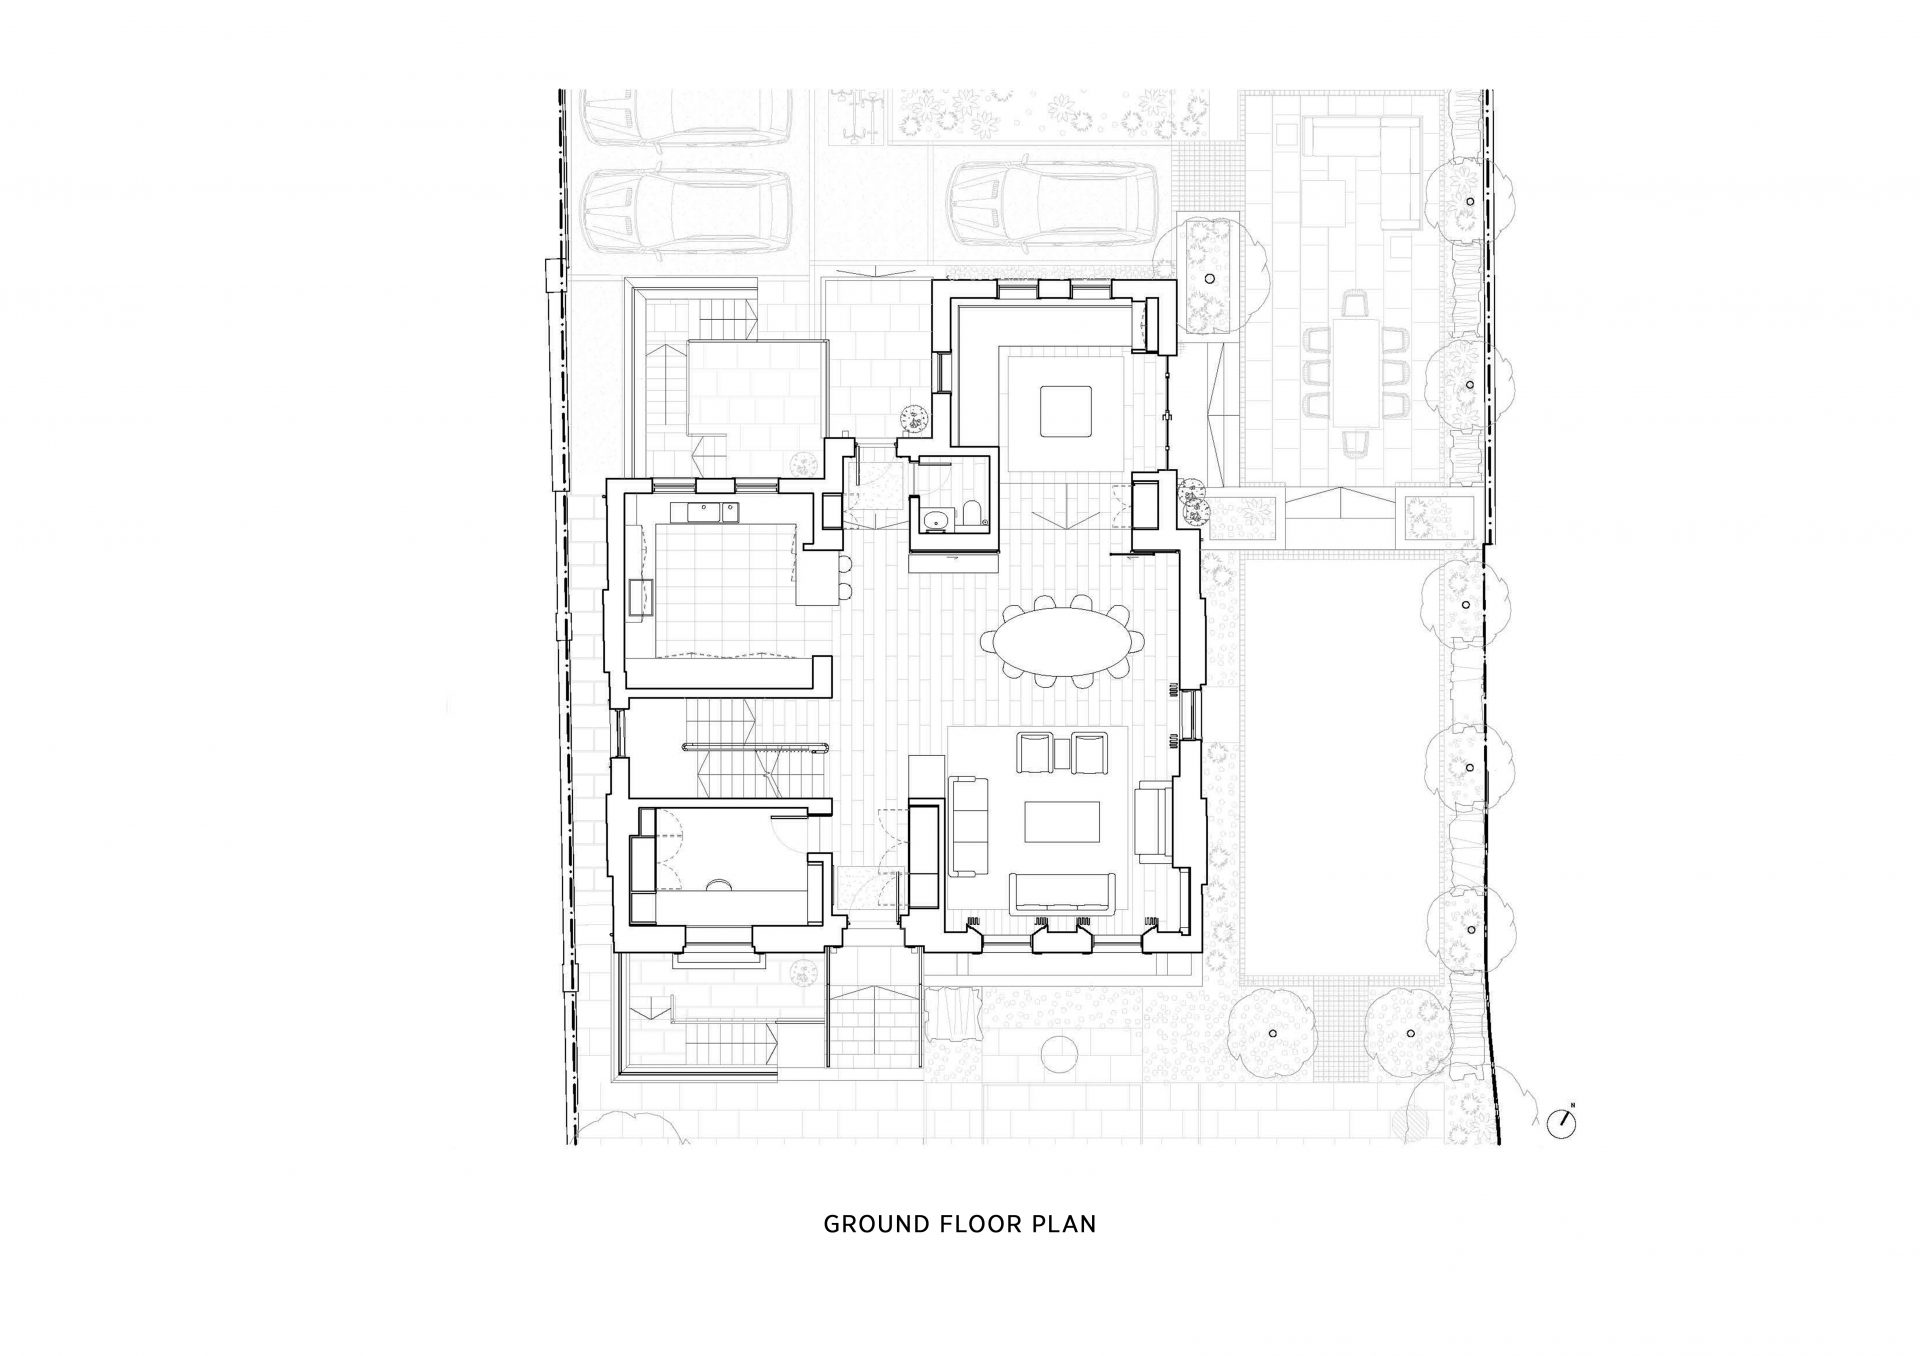 KSR - Curated Home - Ground Floor